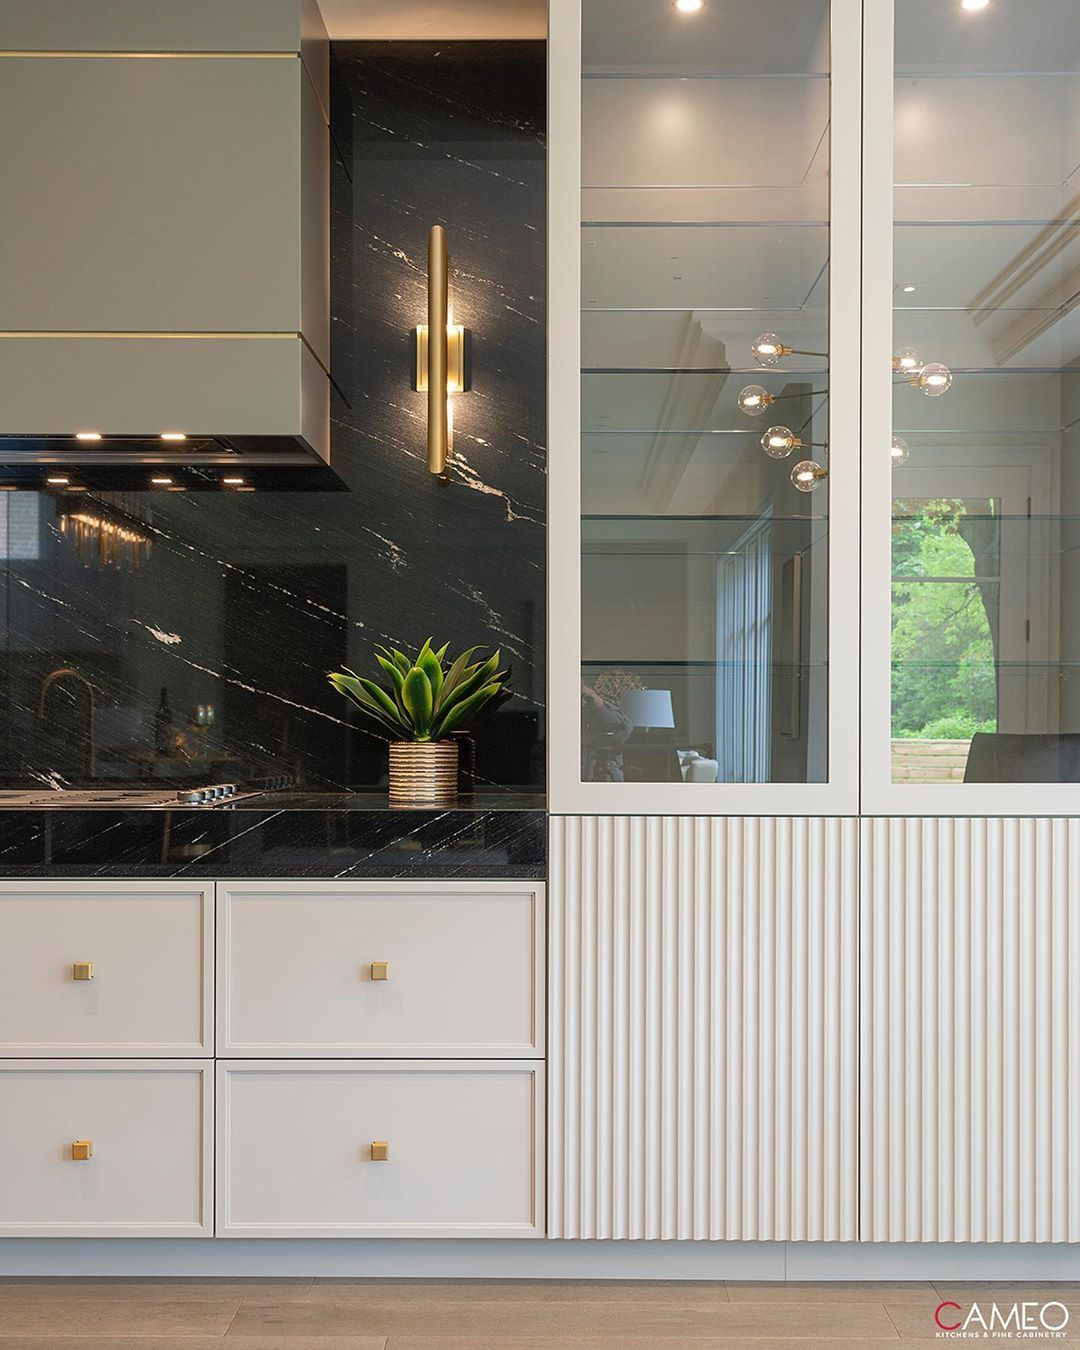 its all in the details .. invest in a cameo kitchen